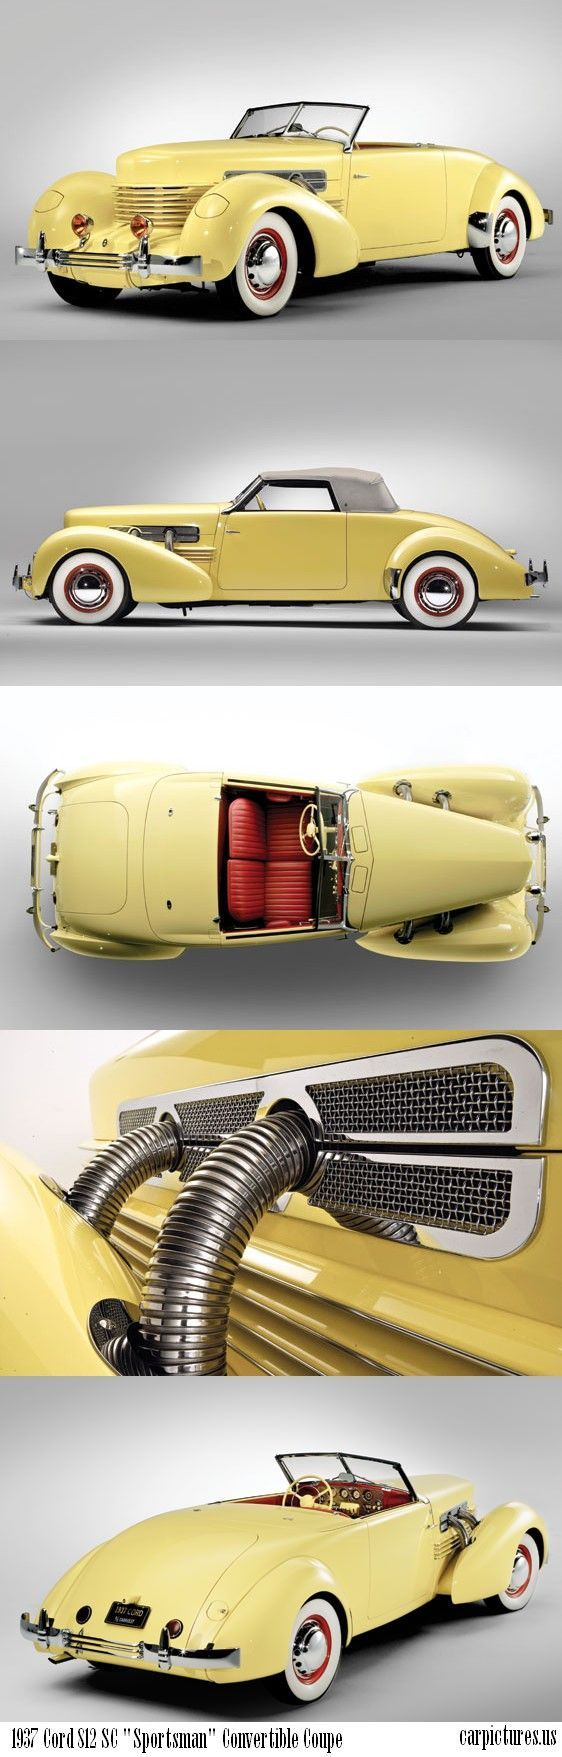 """~1937 Cord 812 SC """"Sportsman"""" Convertible Coupe~ SealingsAndExpung... 888-9-EXPUNGE (888-939-7864) 24/7 Free evaluation/Low money down/easy payments 'Seal past mistakes. Open new opportunities.'"""